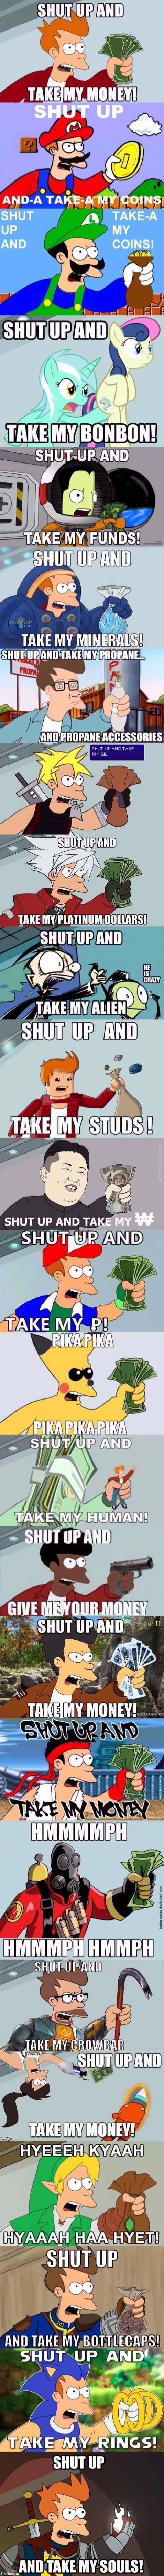 Shut Up Revolution Has Begun! (New & Improved) | . | image tagged in shut up revolution has begun,memes,shut up and take my money,shut up and take my money fry,futurama fry,fry | made w/ Imgflip meme maker